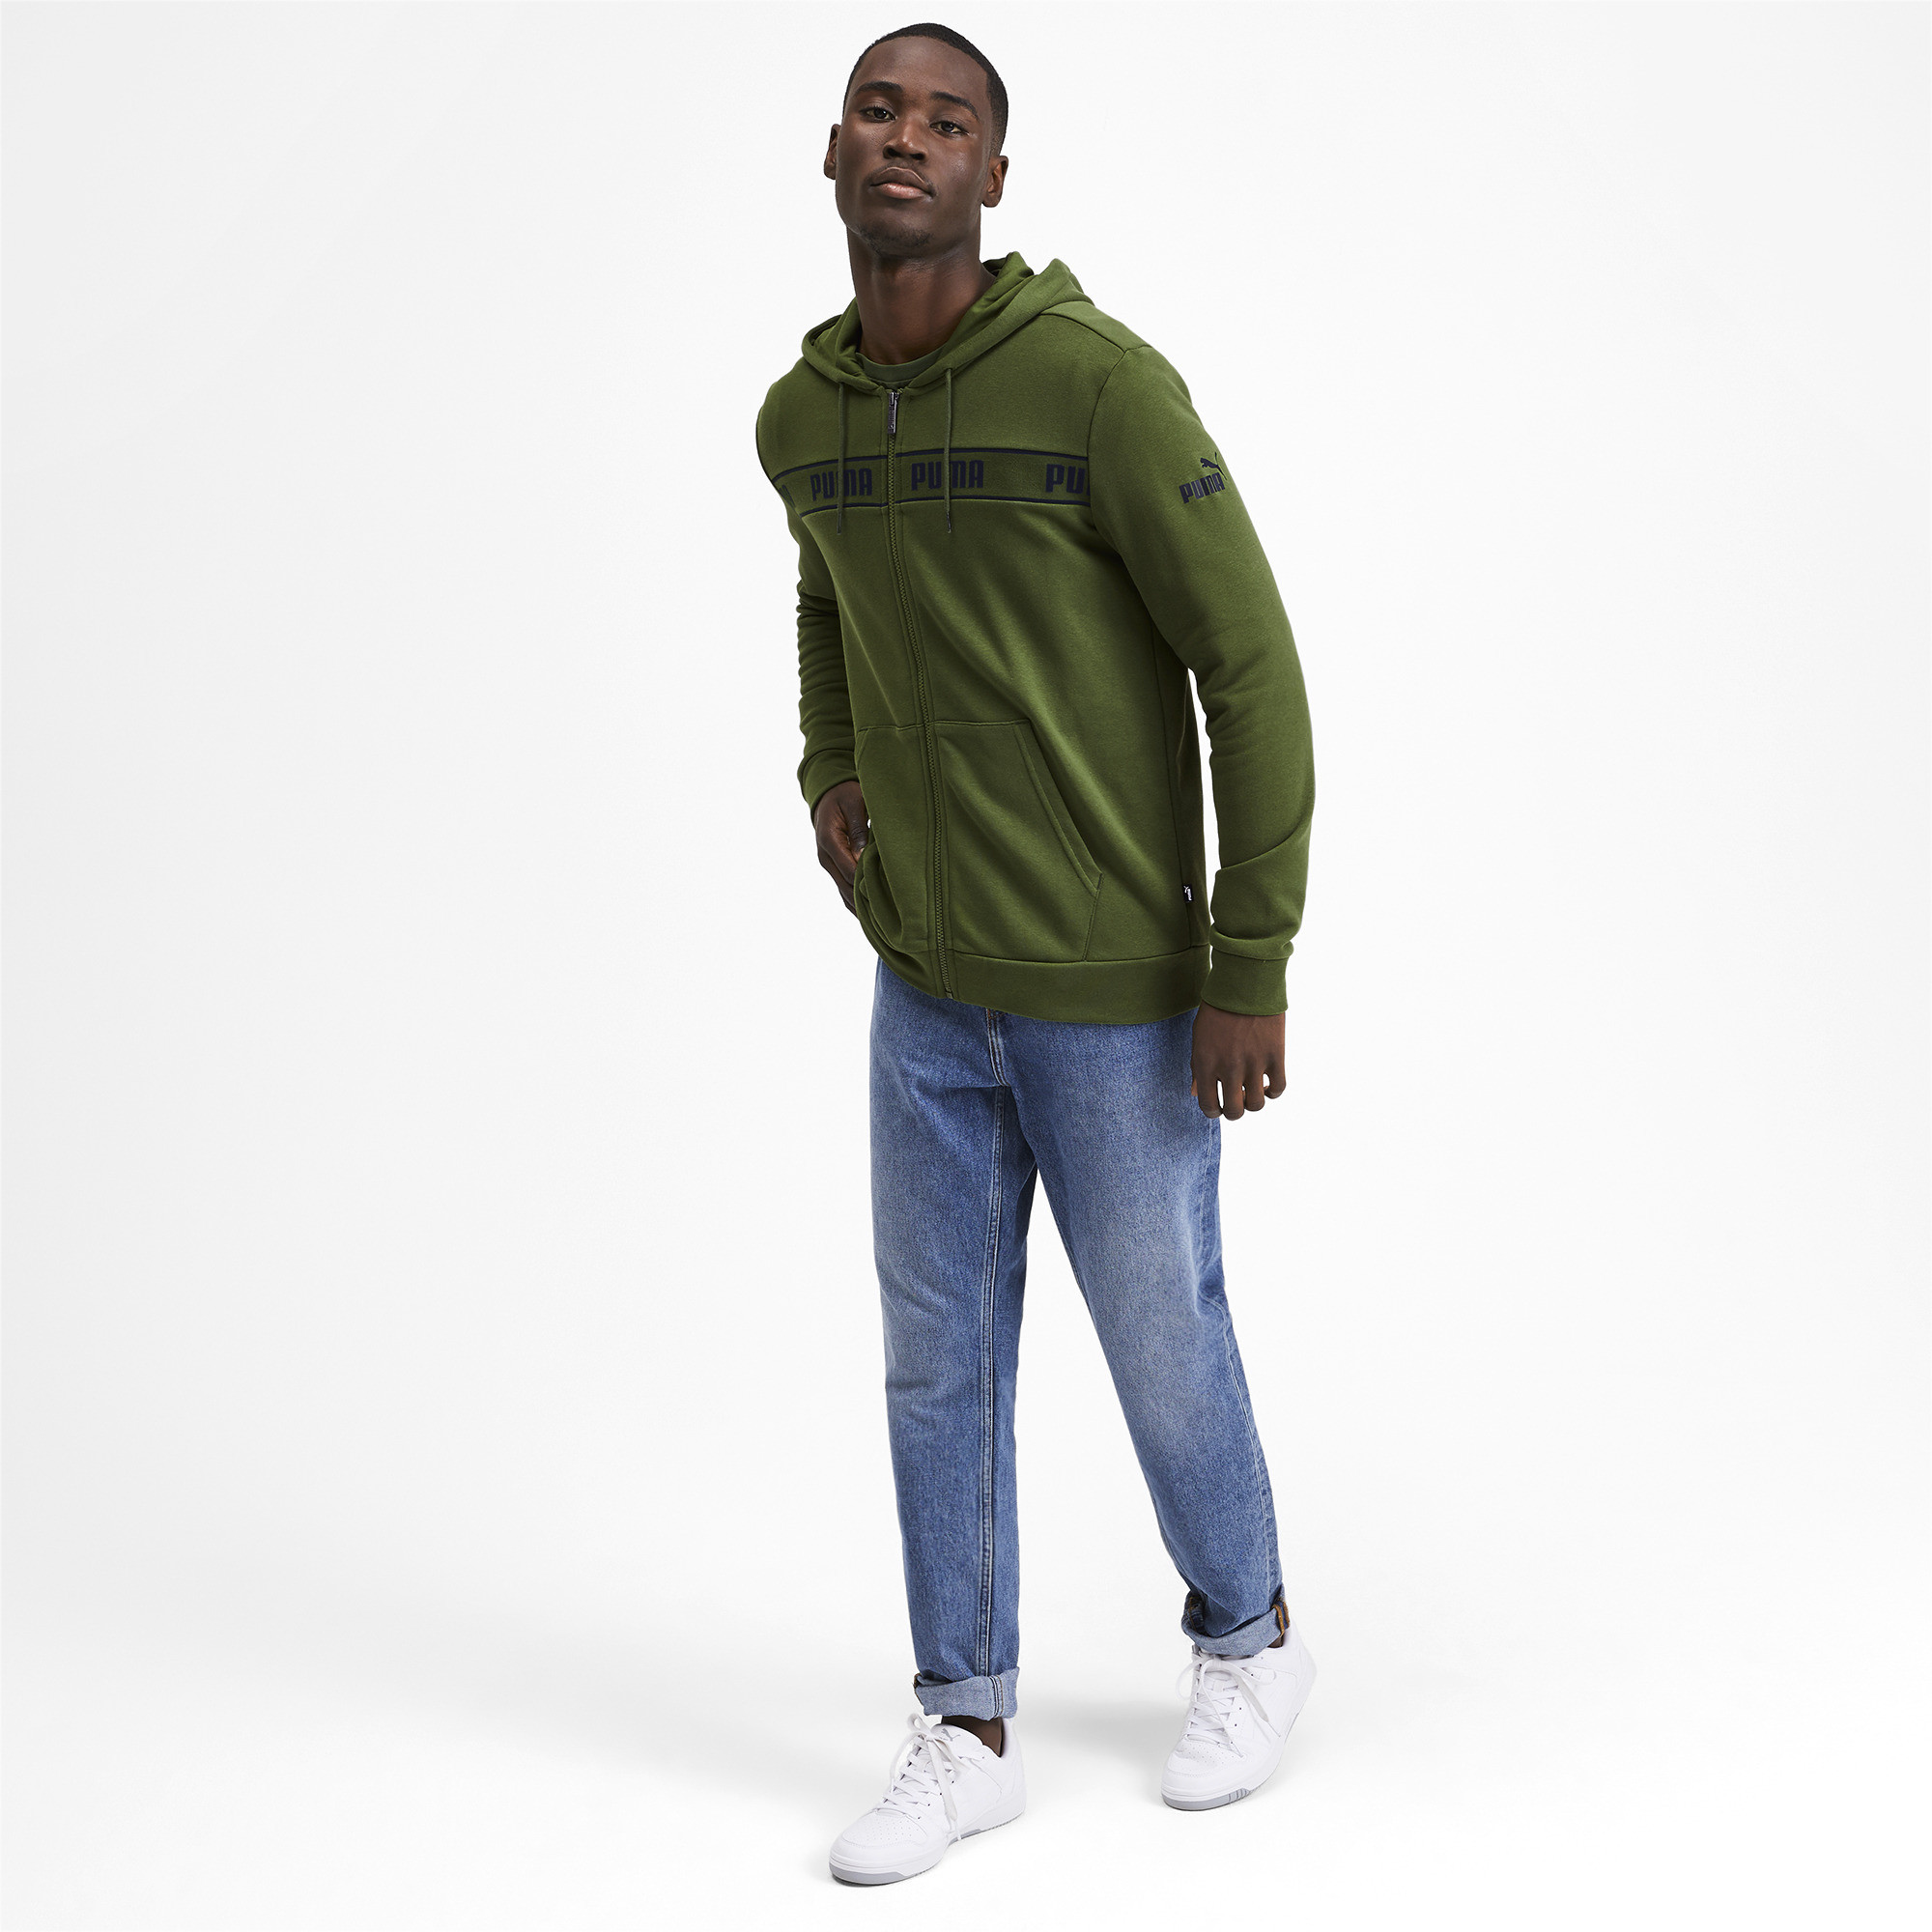 PUMA-Amplified-Men-039-s-Hooded-Jacket-Men-Sweat-Basics thumbnail 20